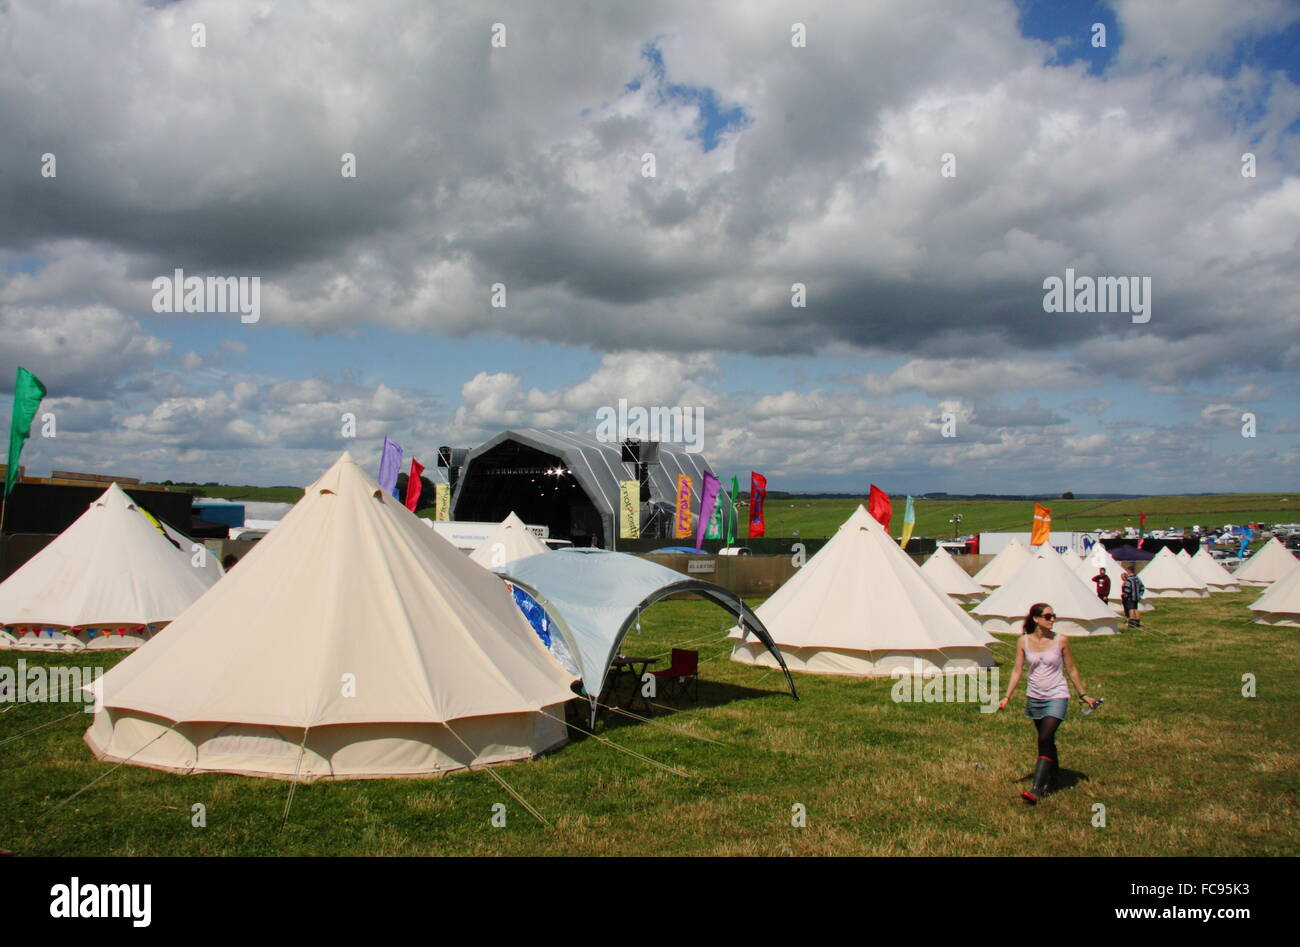 The Glamping area at the Y Not music festival, Derbyshire that provides luxury camping facilities to festival goers, - Stock Image